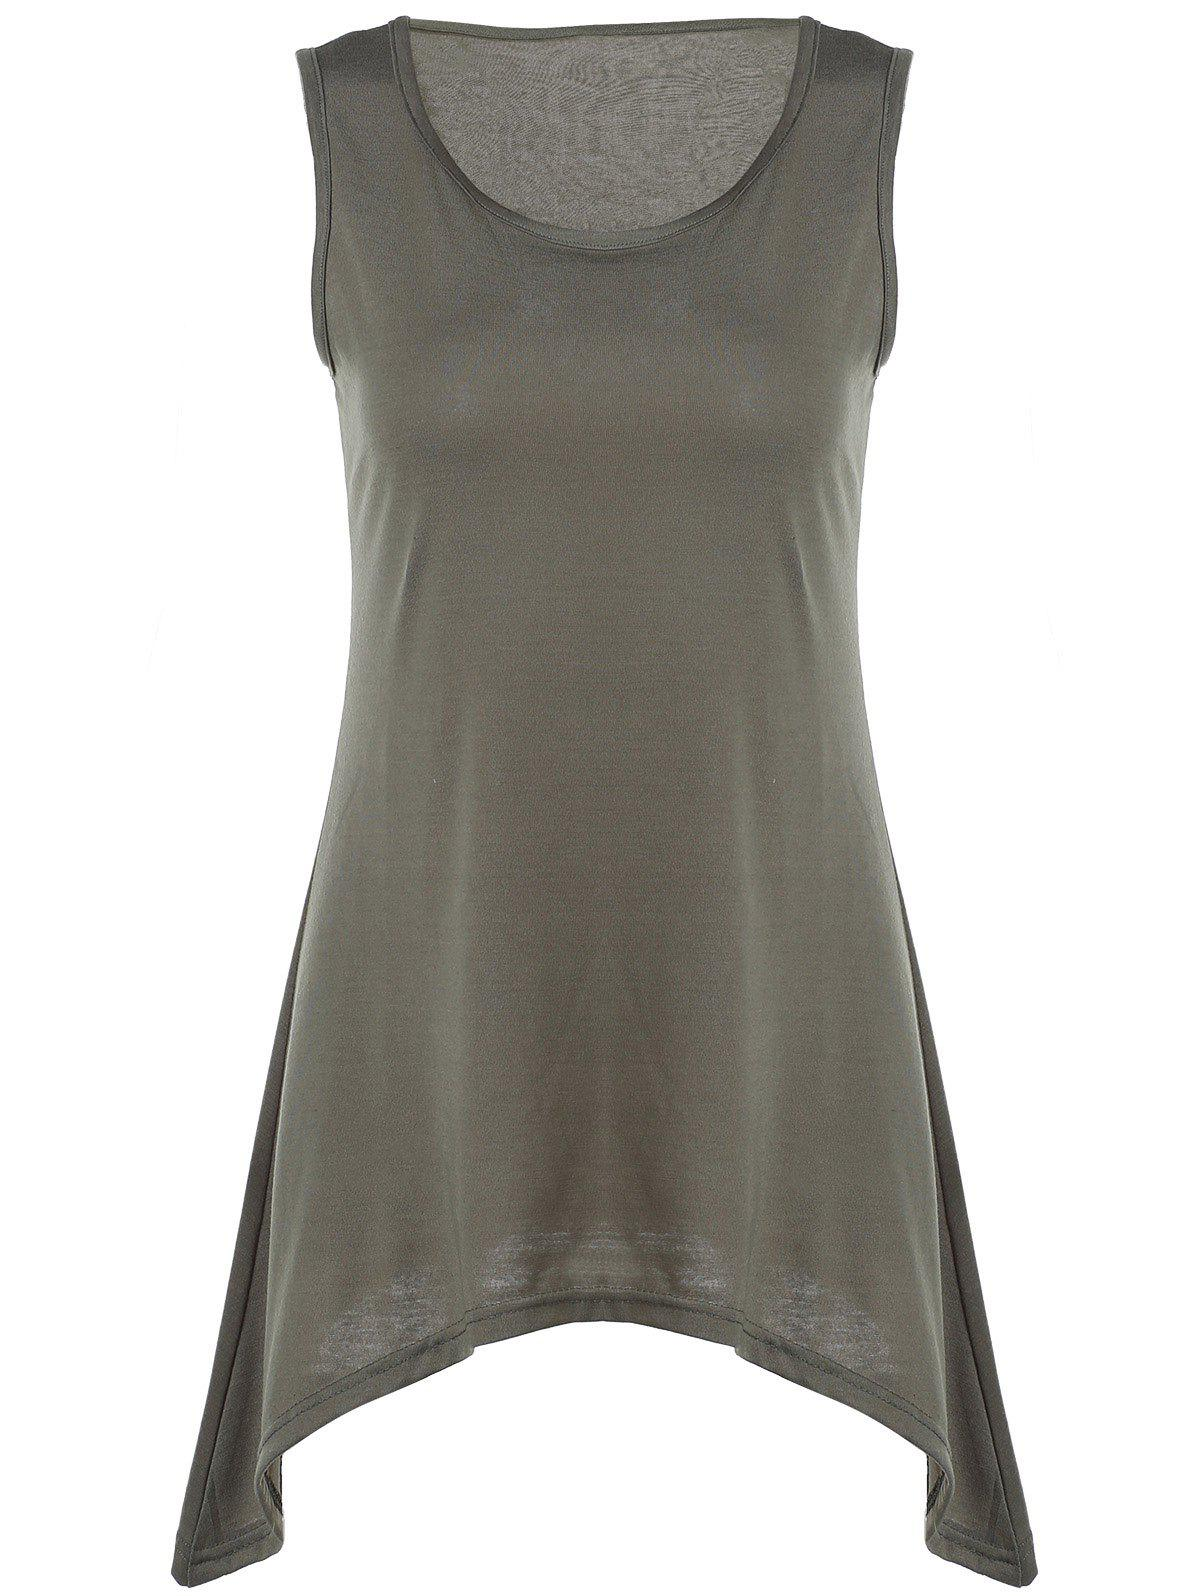 Scoop Neck Sleeveless Solid Color Asymmetrical Women's Tank Top - ARMY GREEN L